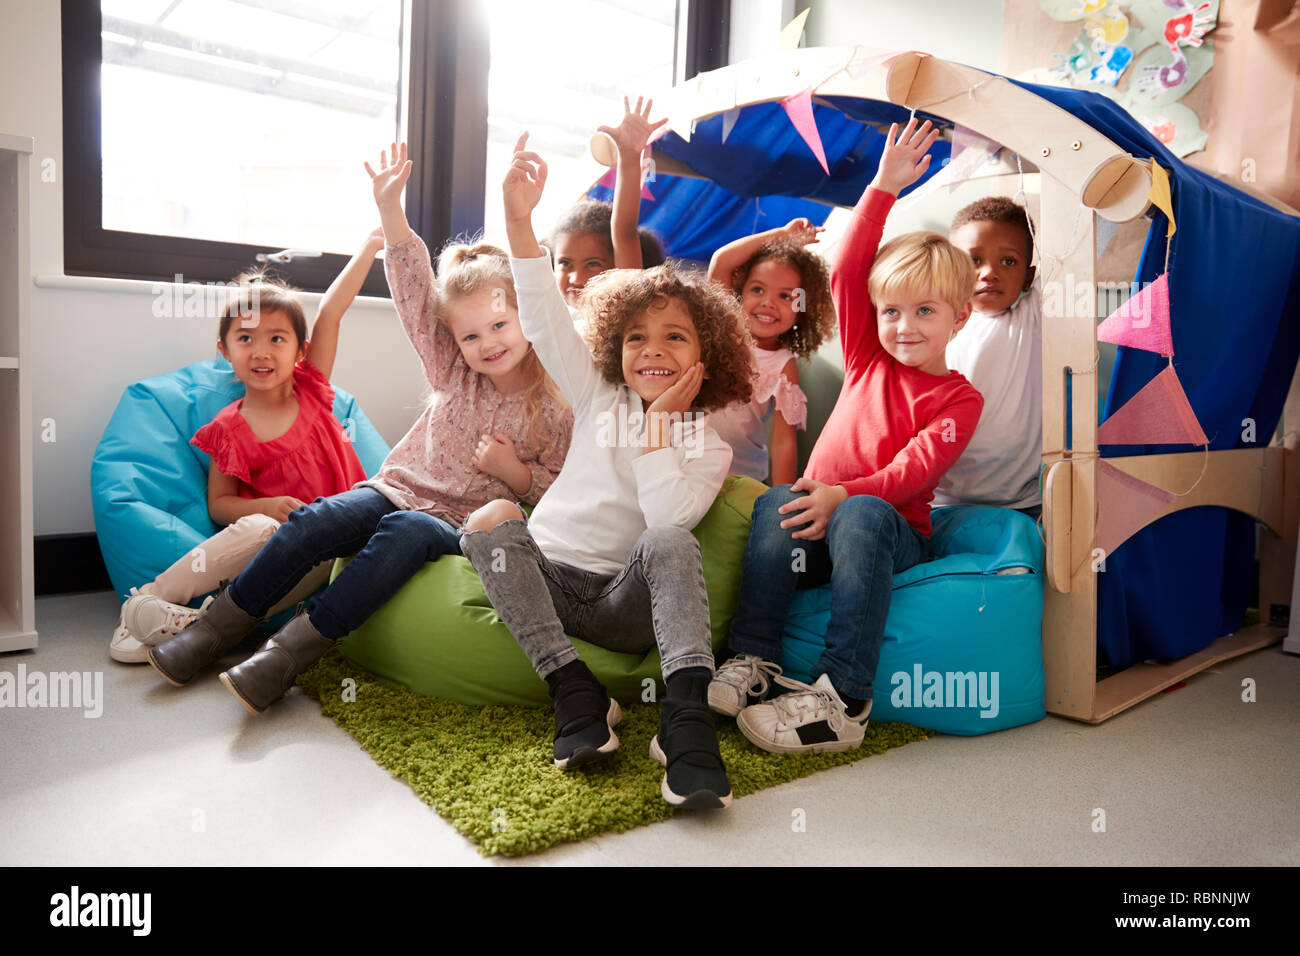 A multi-ethnic group of infant school children sitting on bean bags in a comfortable corner of the classroom, raising their hands to answer a question, low angle, close up - Stock Image